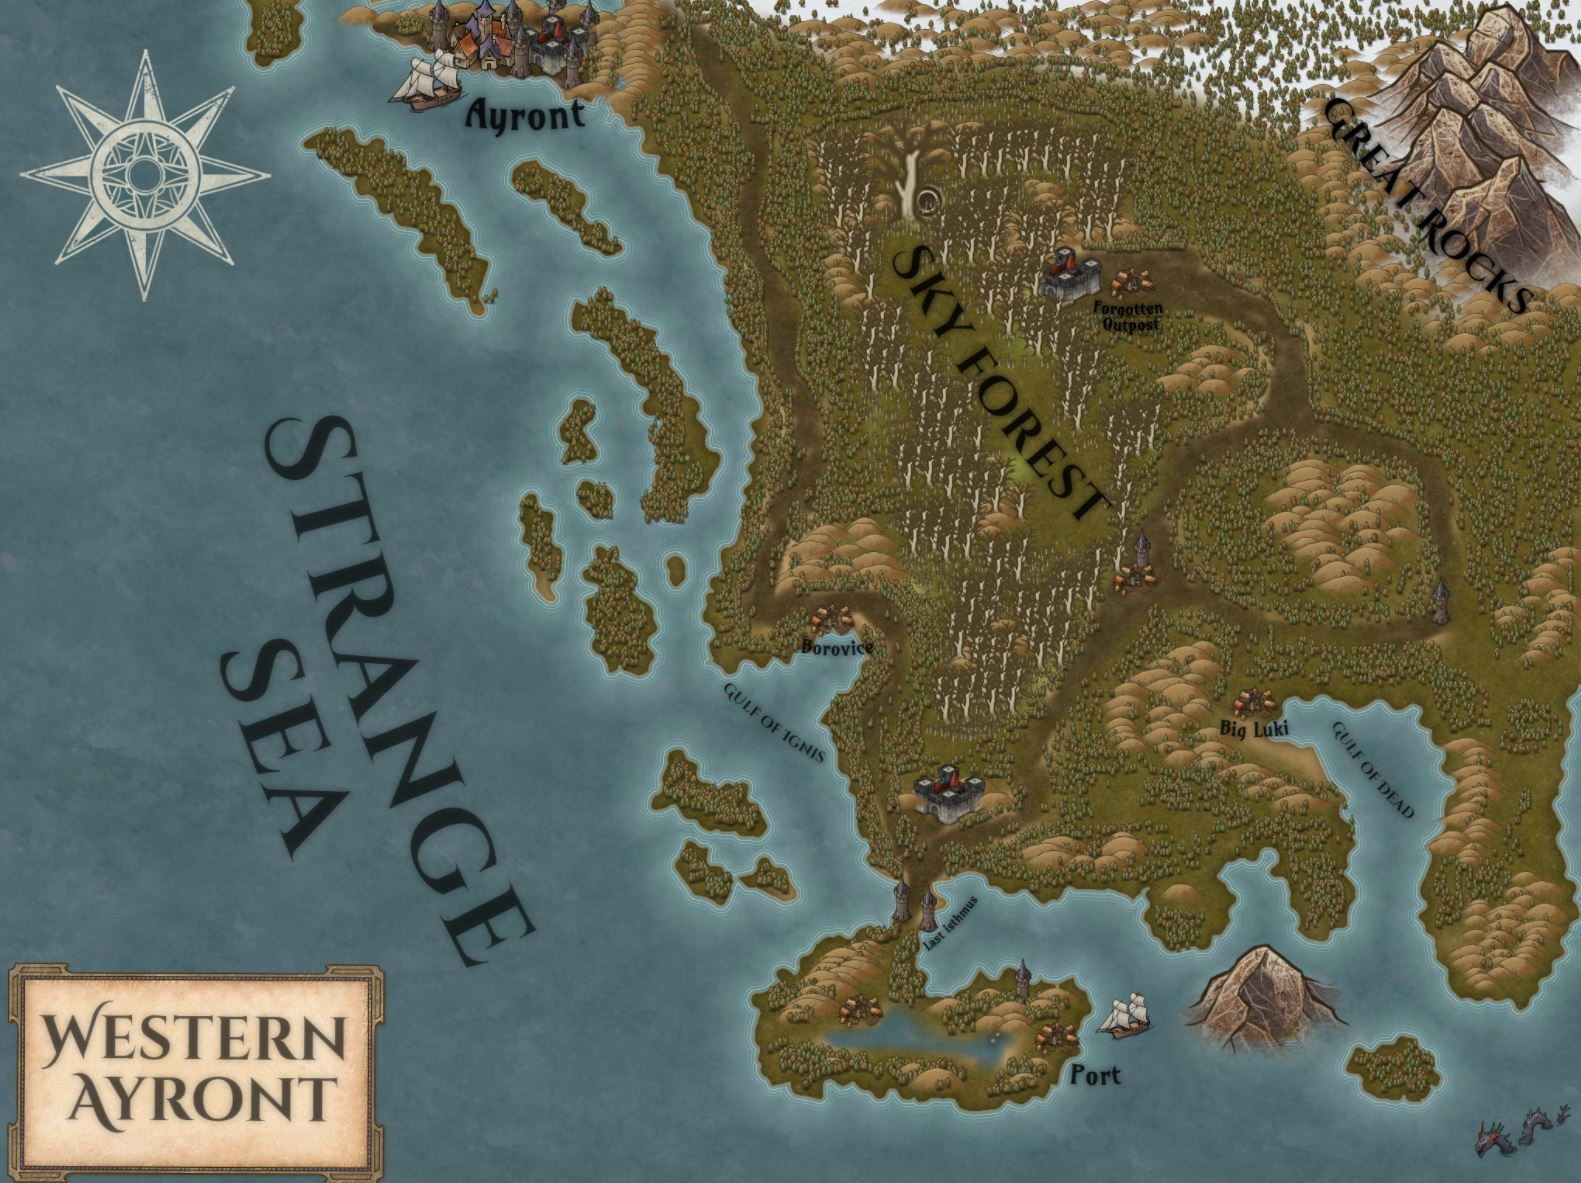 dayz-medieval-ages-mod-ayront-map